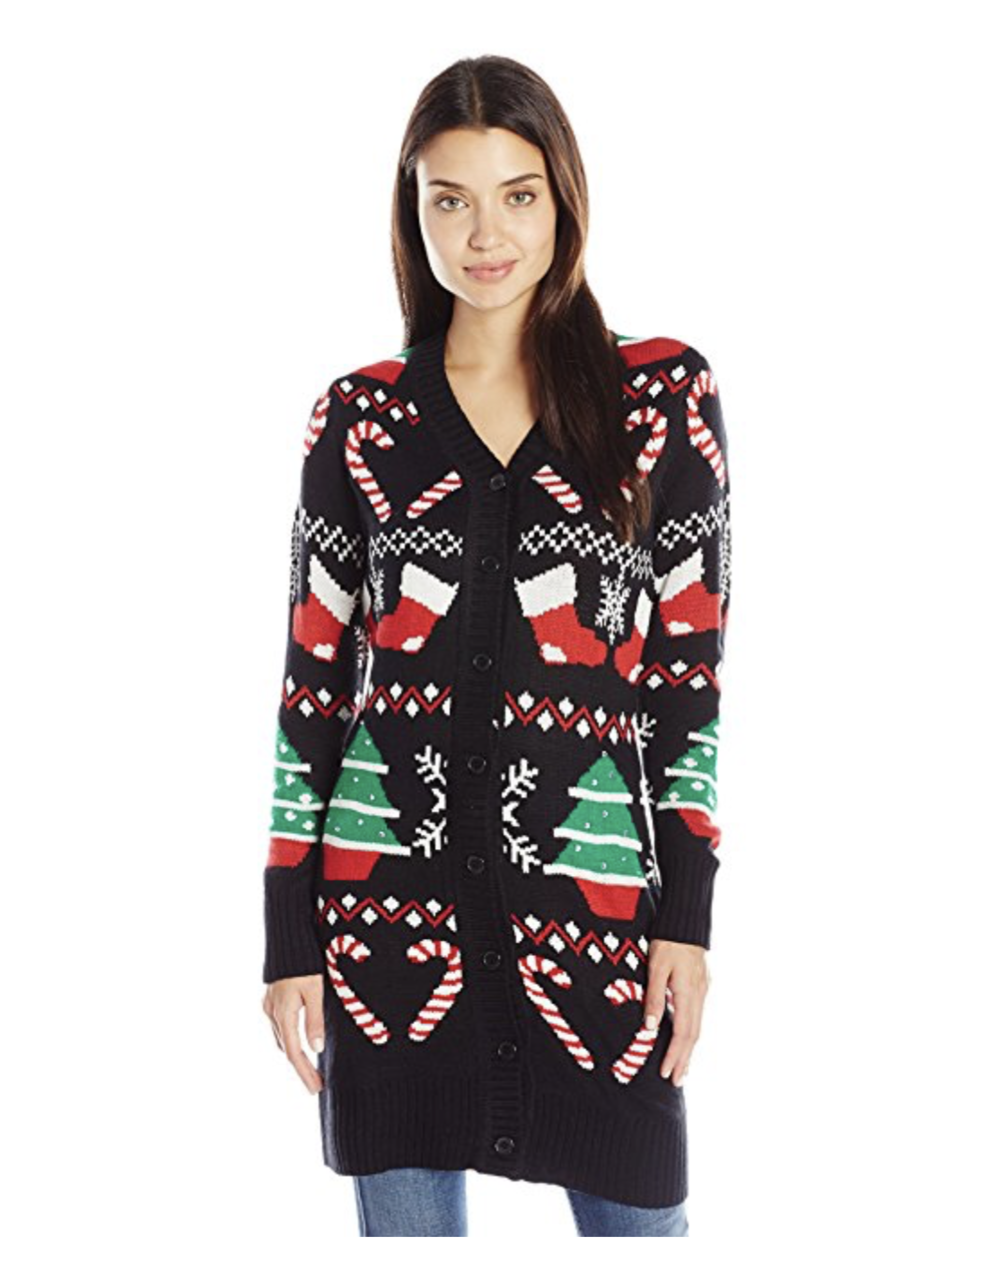 My Christmas sweater is long gone, but it looked an awful lot like this...only tackier.